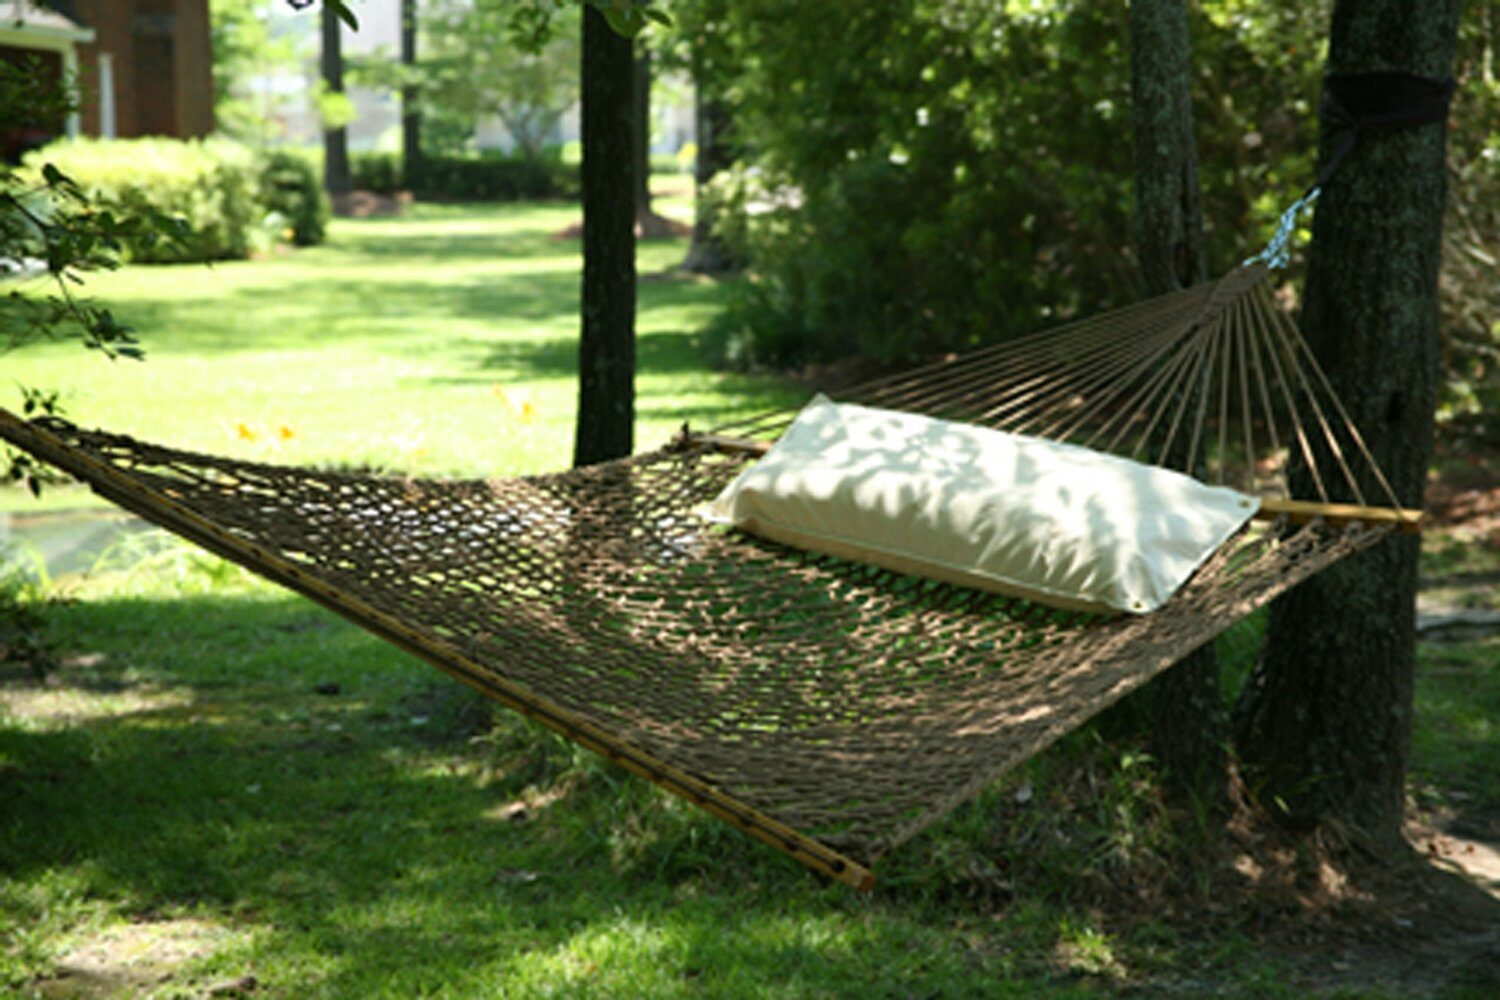 Medium image of rope hammock